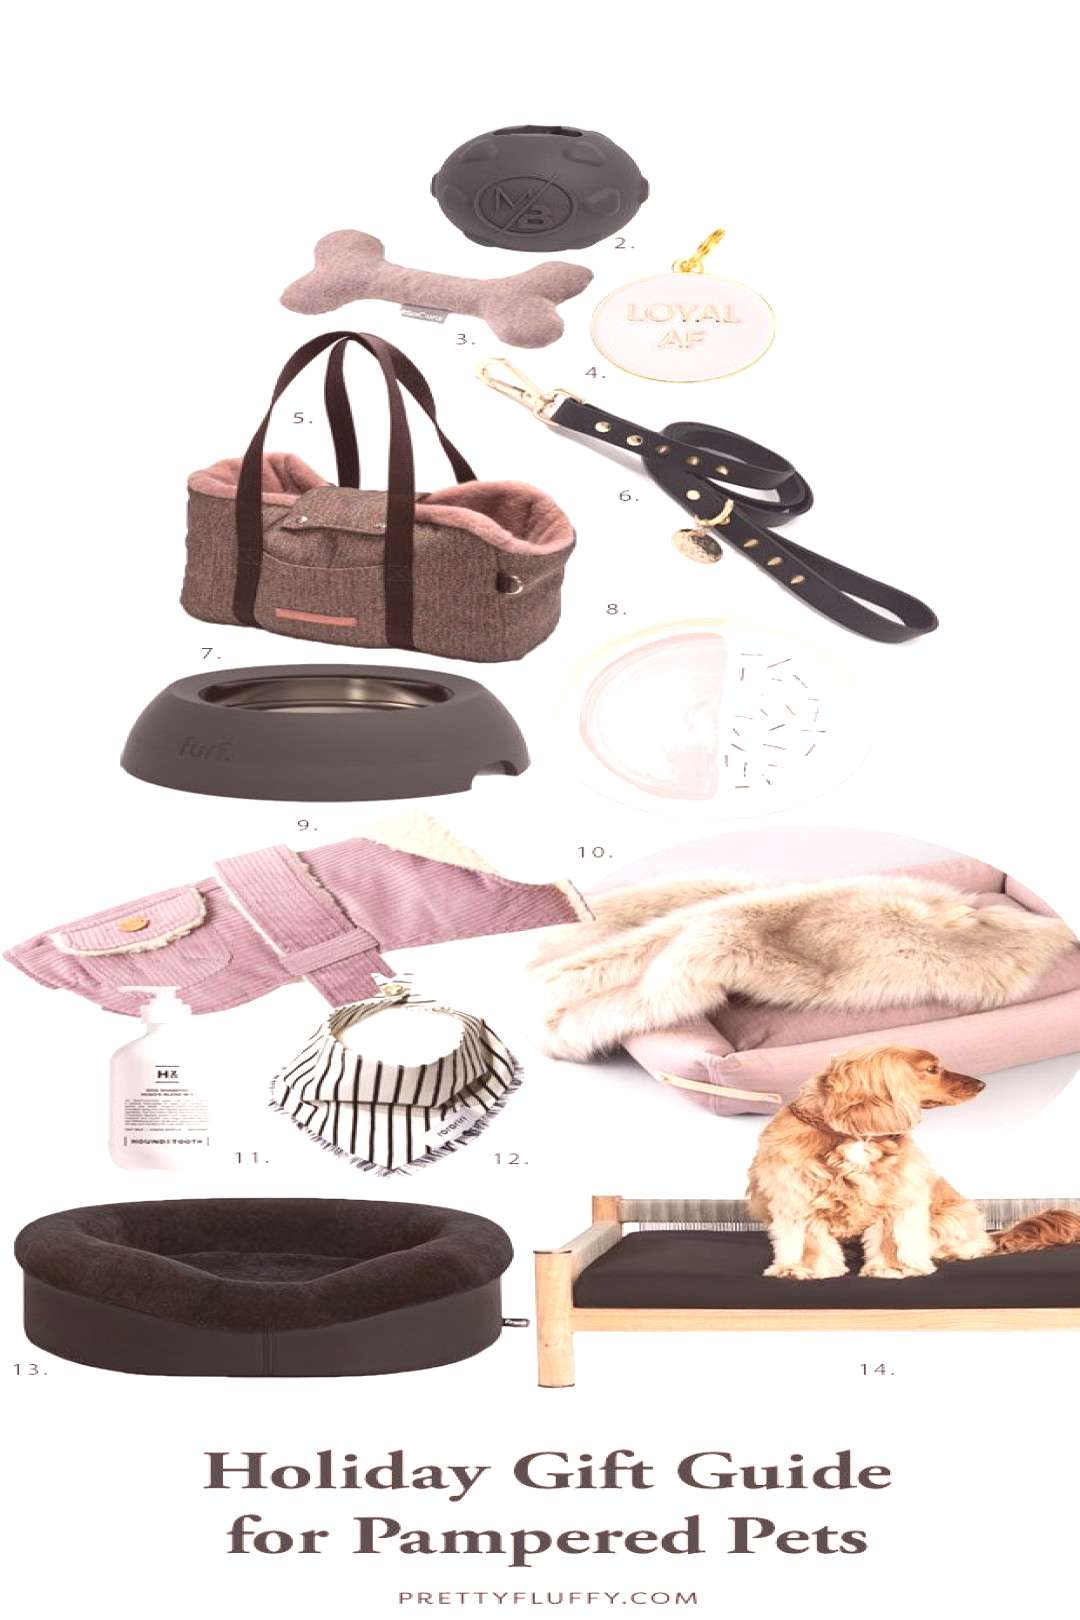 2019 Holiday Gift Guide for Pampered Pets